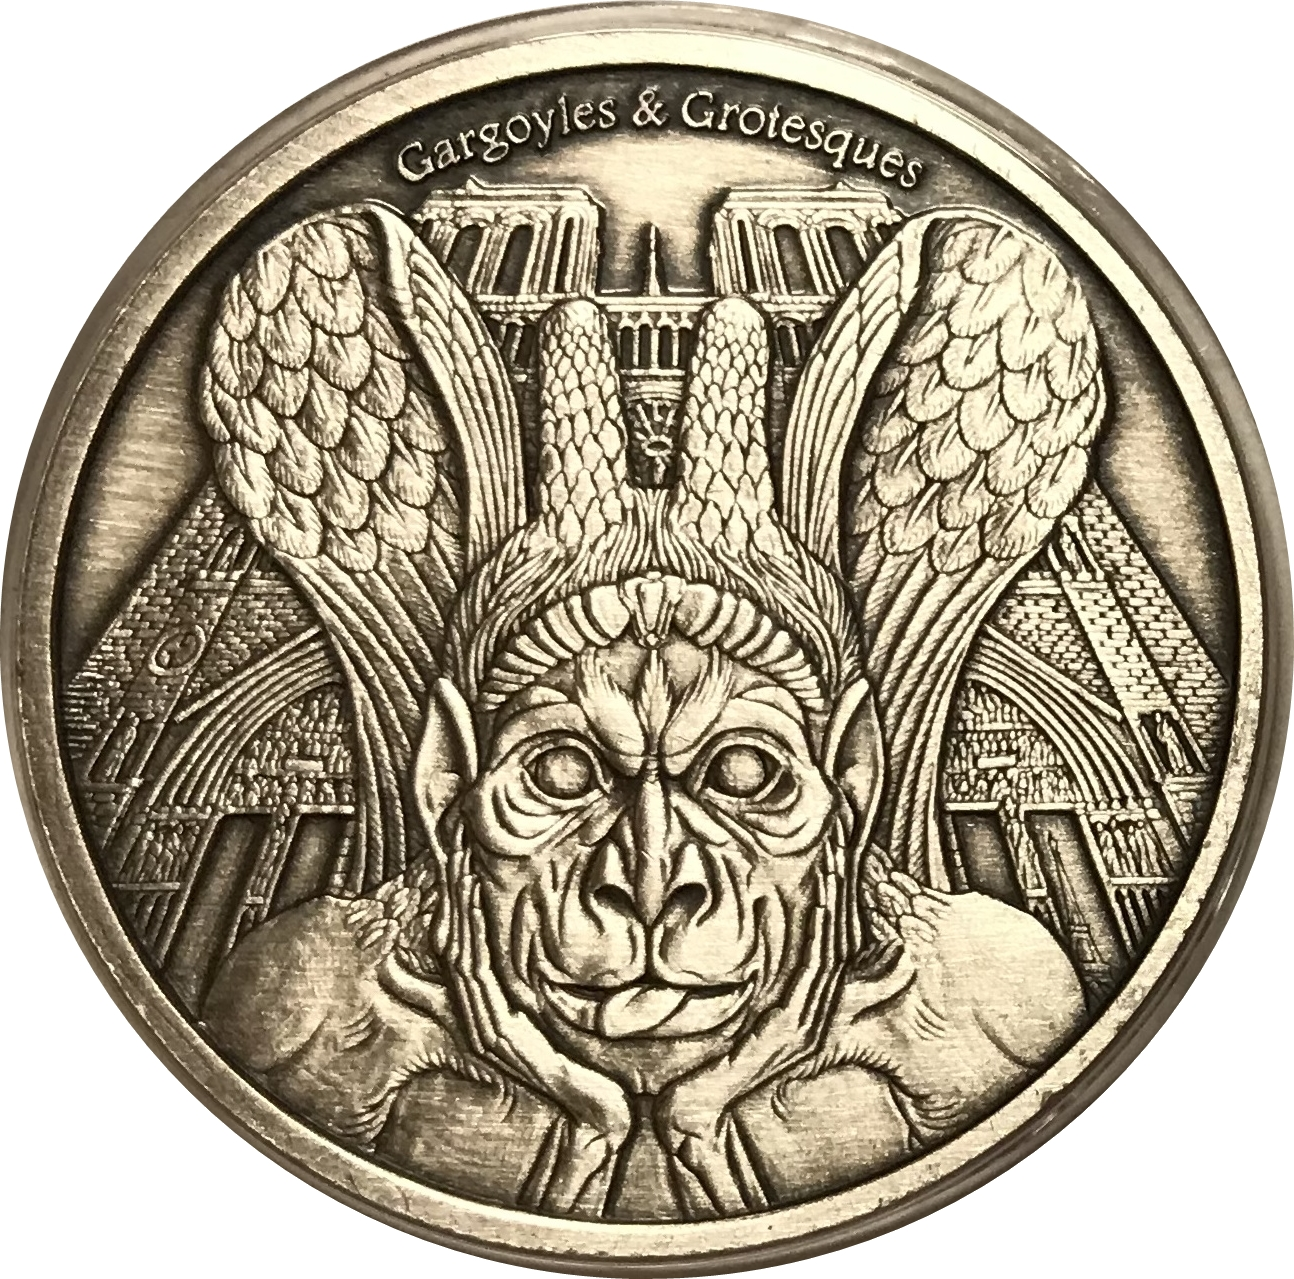 Gargoyles The Spitter 2017 Chad 1000 Francs 1 Oz Pure Silver Proof Coin Perfect